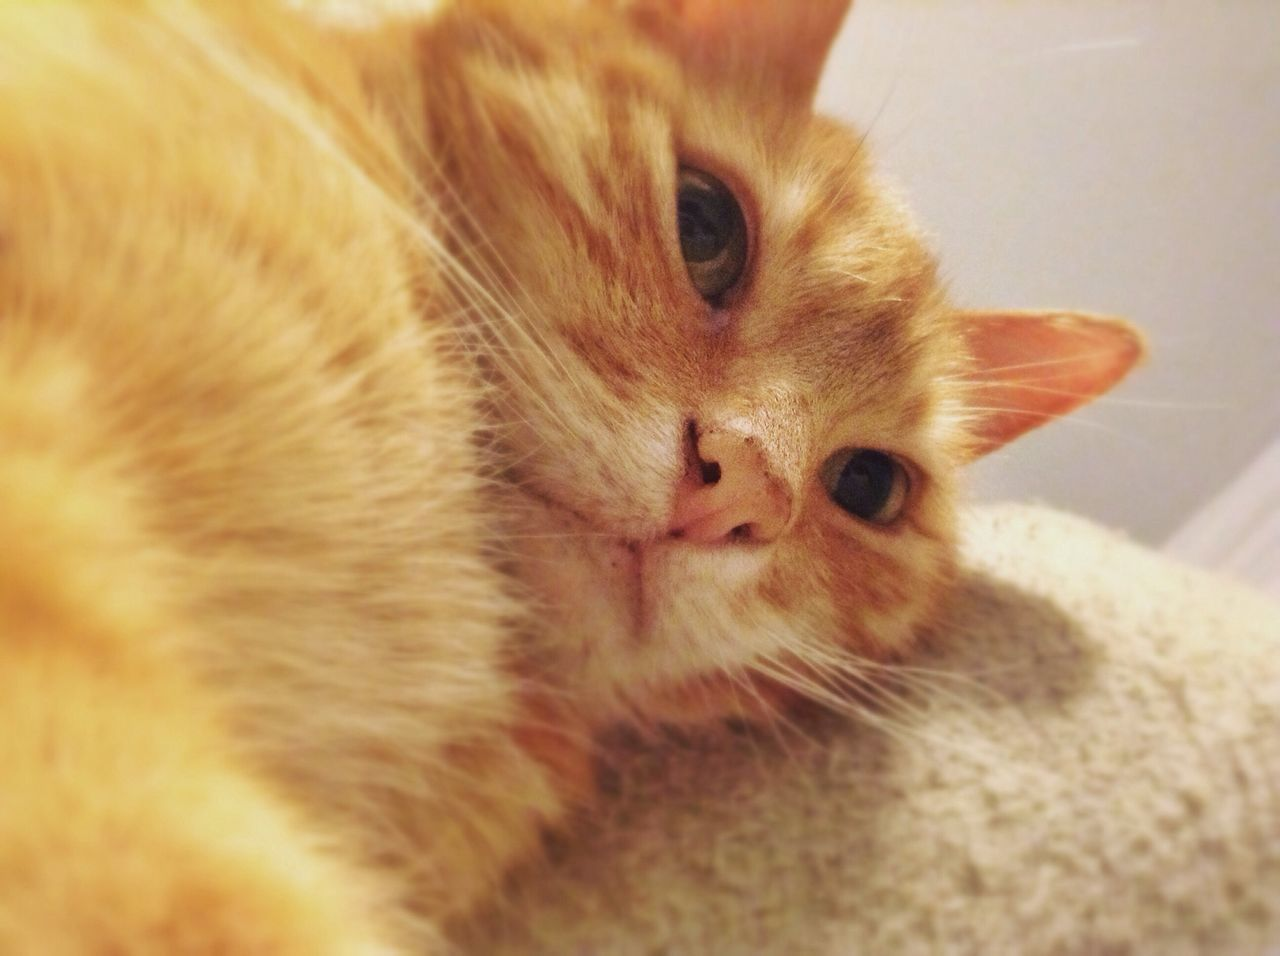 pets, domestic cat, mammal, one animal, domestic animals, animal themes, feline, whisker, indoors, no people, portrait, close-up, ginger cat, day